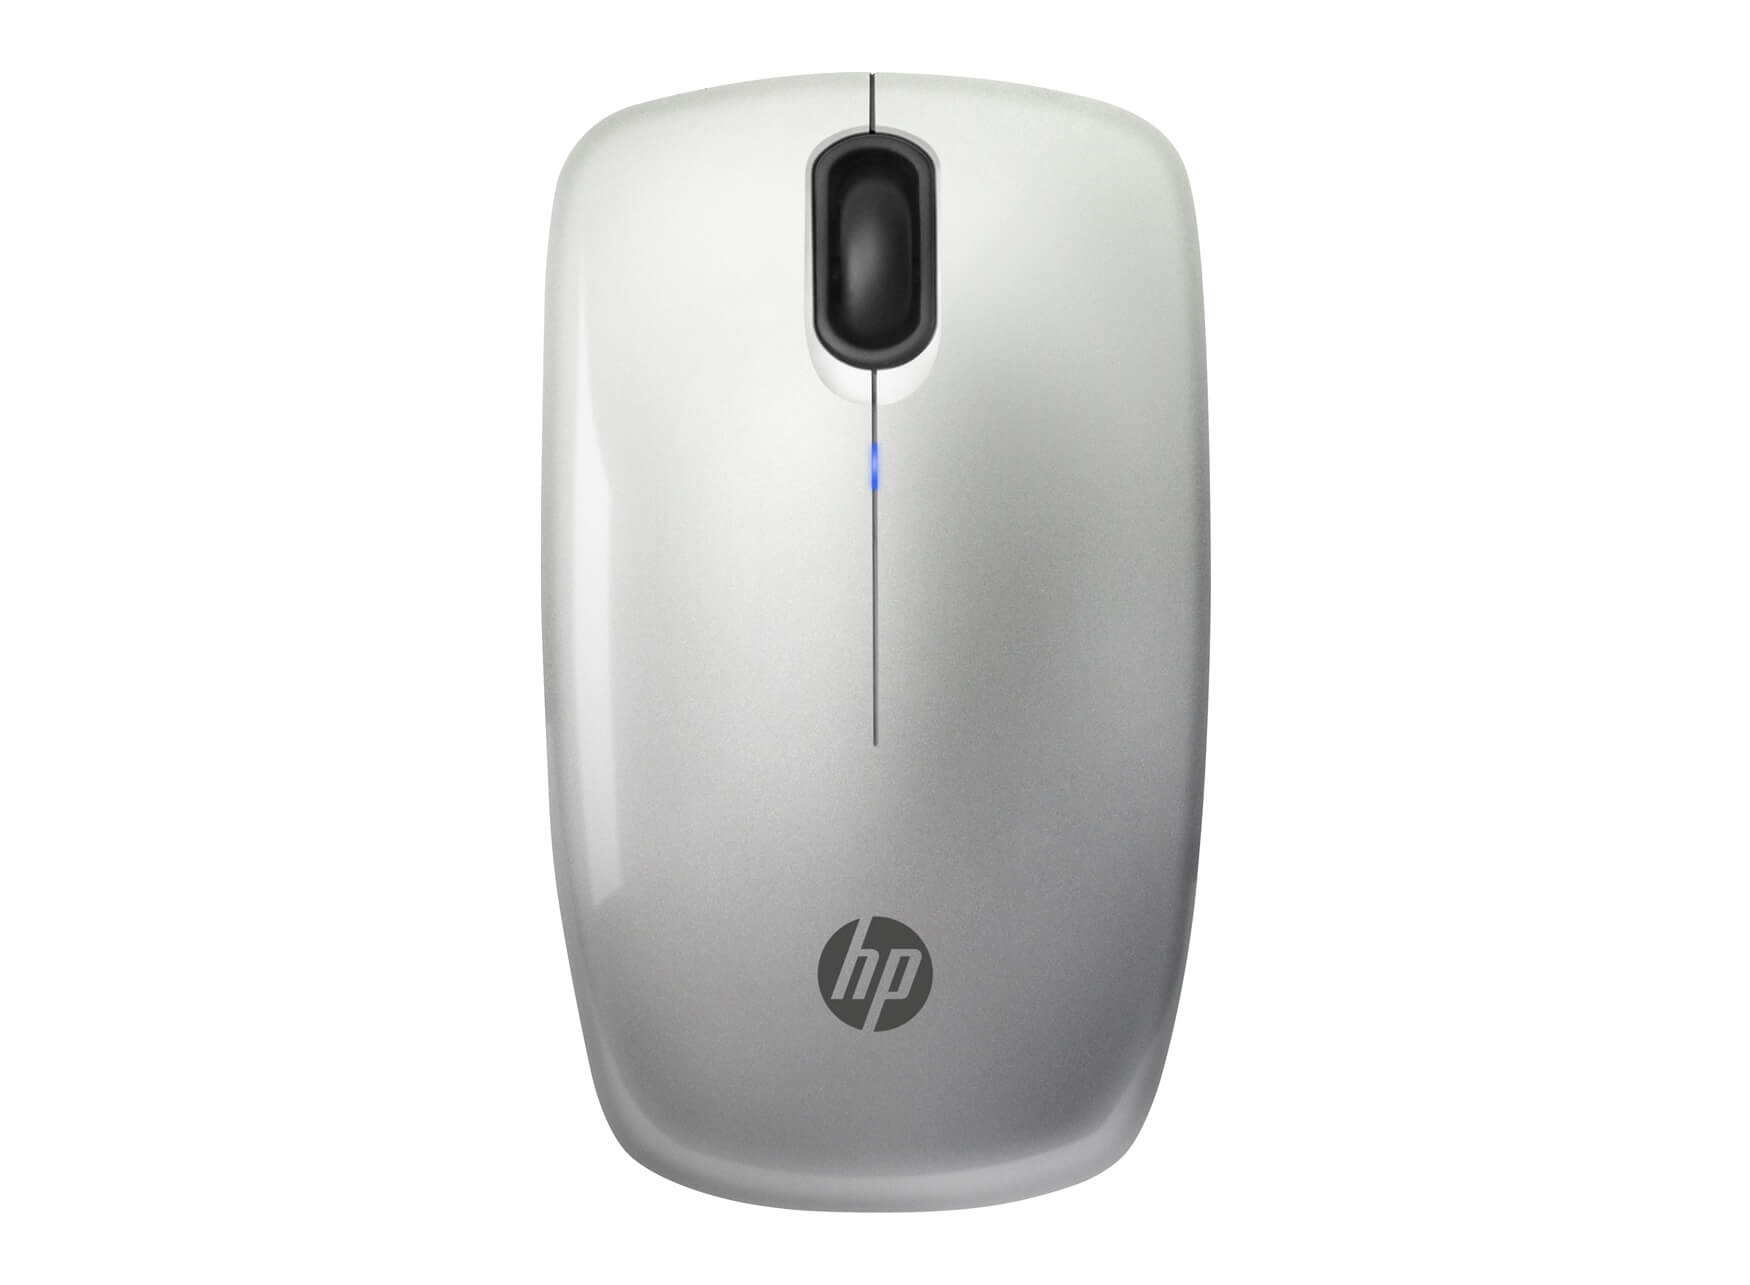 how to connect a hp mouse to a computer